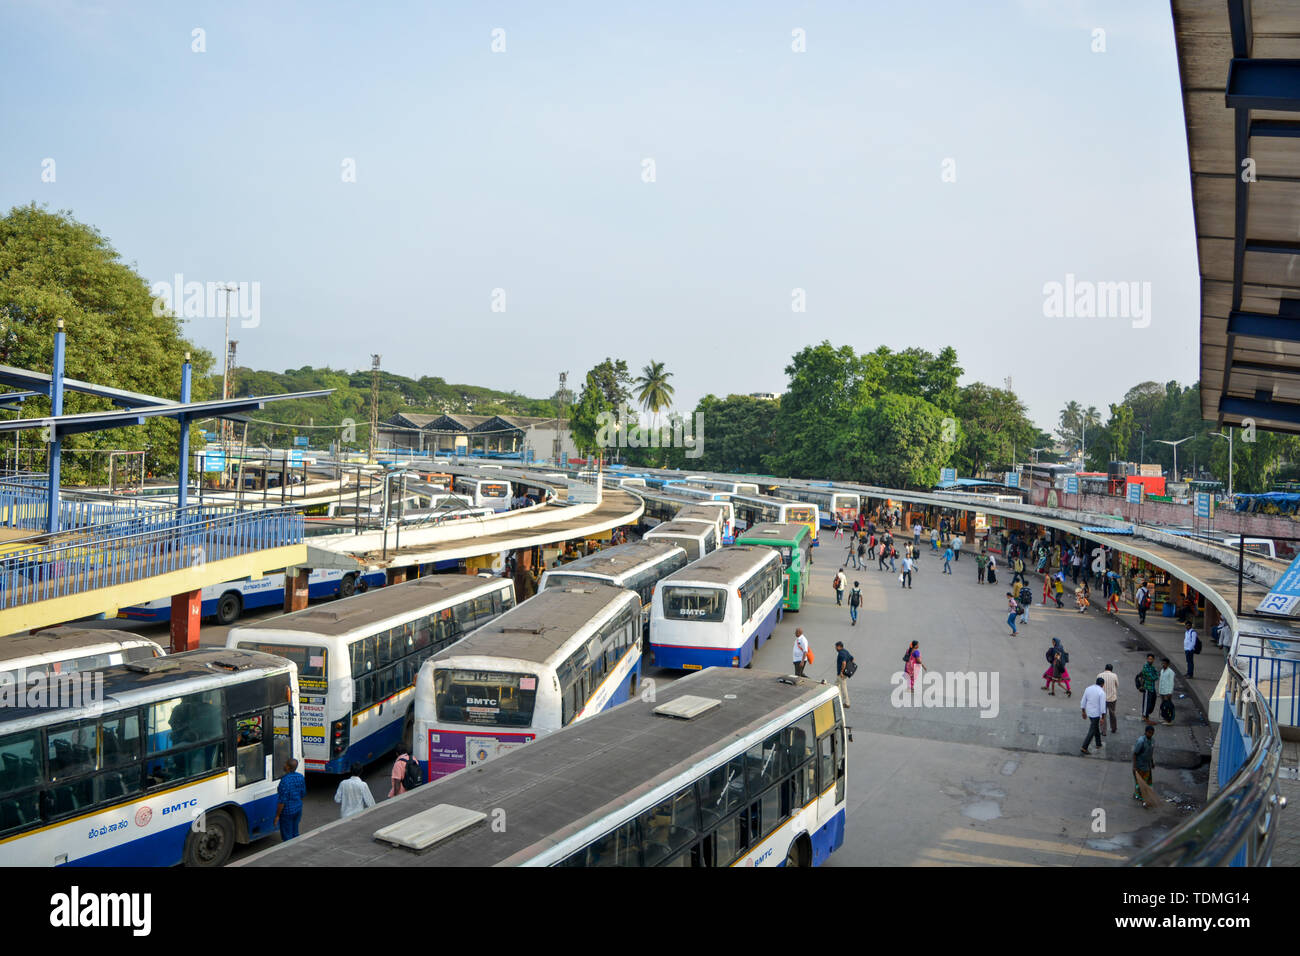 BANGALORE INDIA June 3, 2019: Stack of Buses in the Kempegowda Bus Station known as Majestic during morning time. Stock Photo